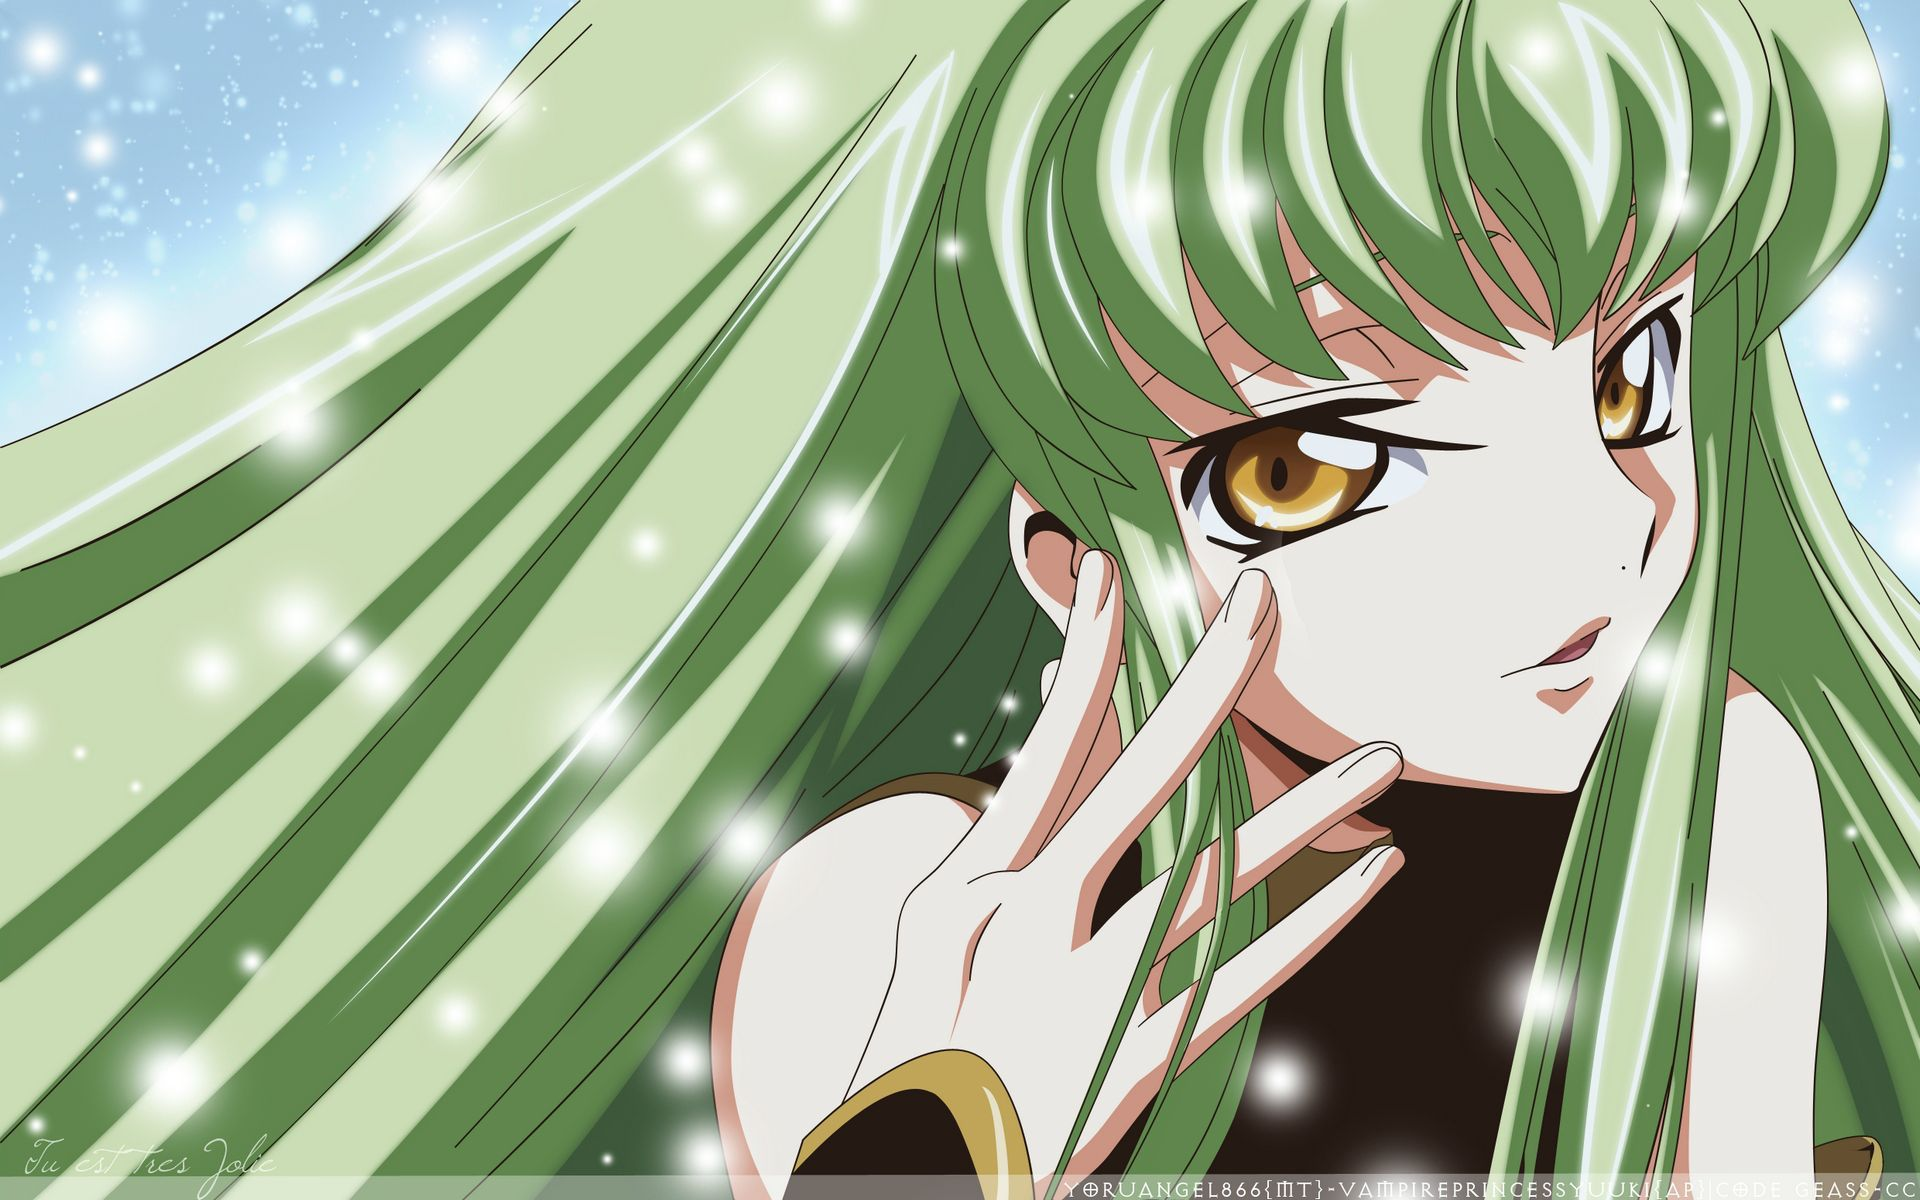 152 Anime Wallpapers Examples For Your Desktop Backgrounds